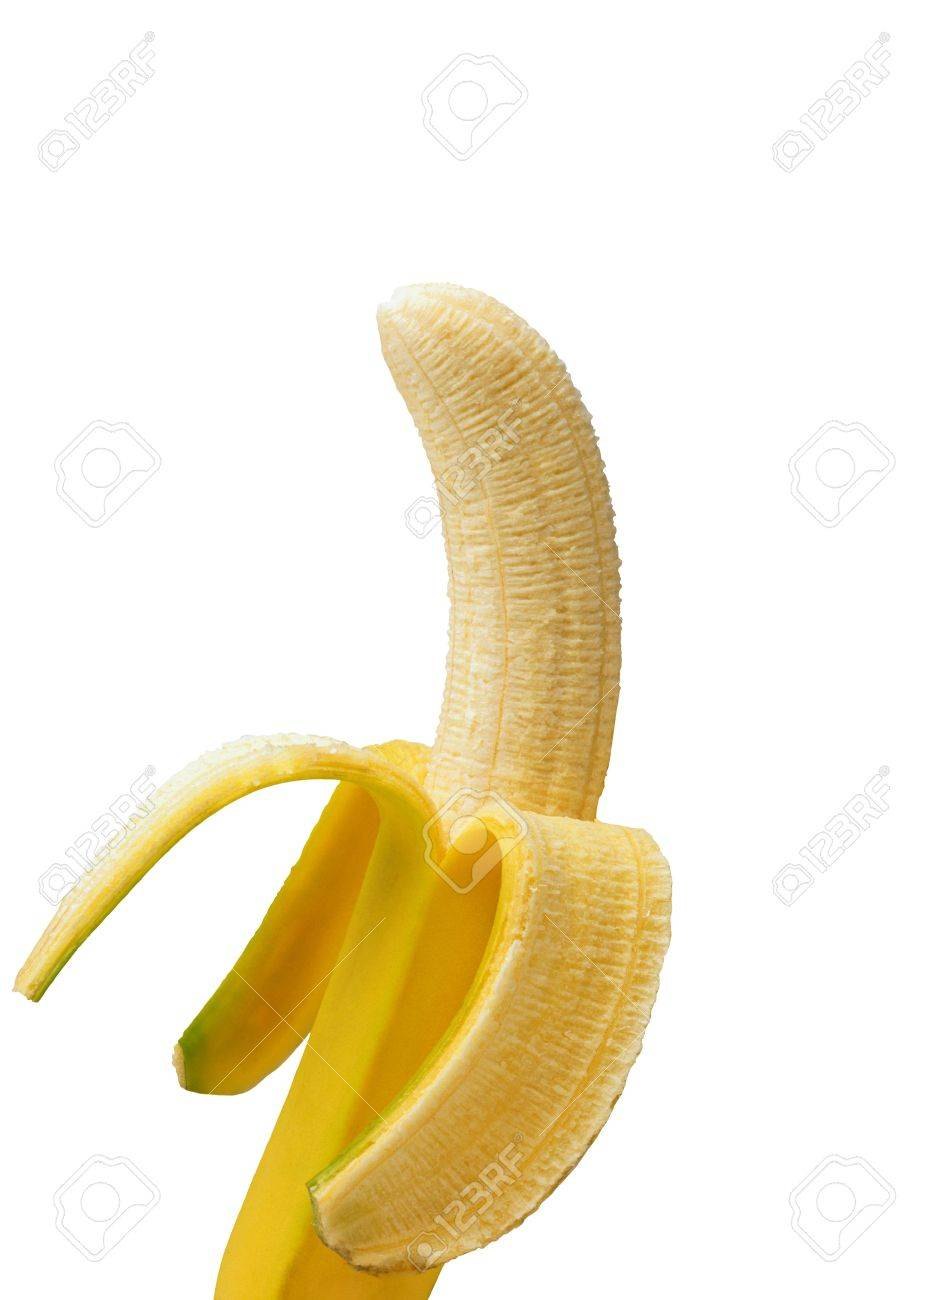 Open banana isolated on a white background - 11948721